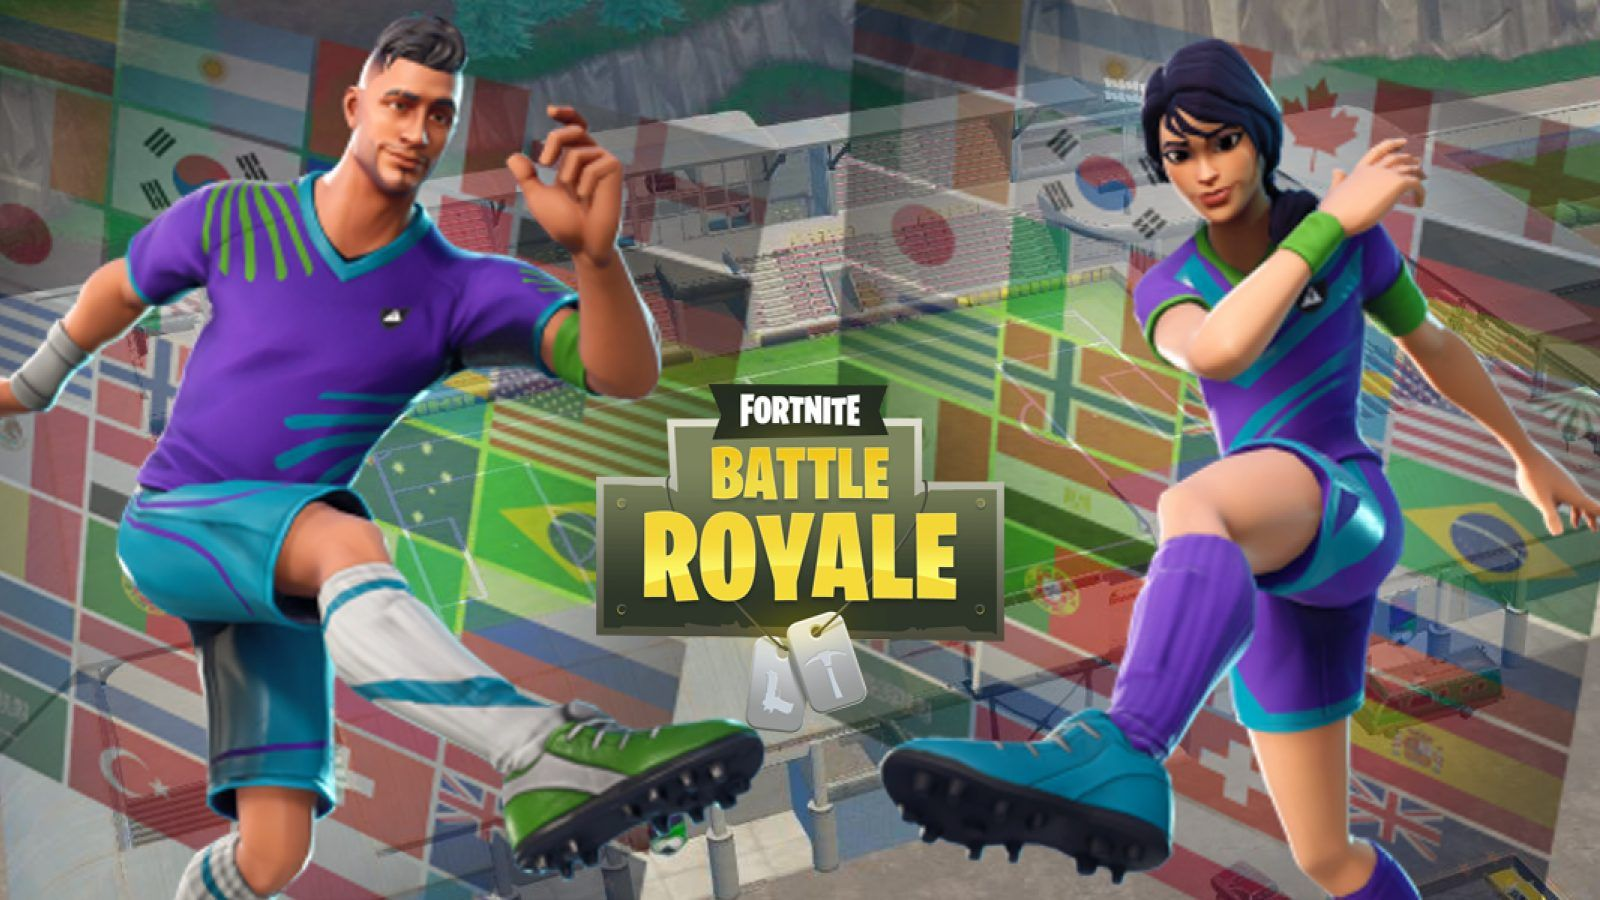 A Video Of The Fully Customization Football World Cup Op Fortnite Soccer Skin 1600x900 Wallpaper Teahub Io